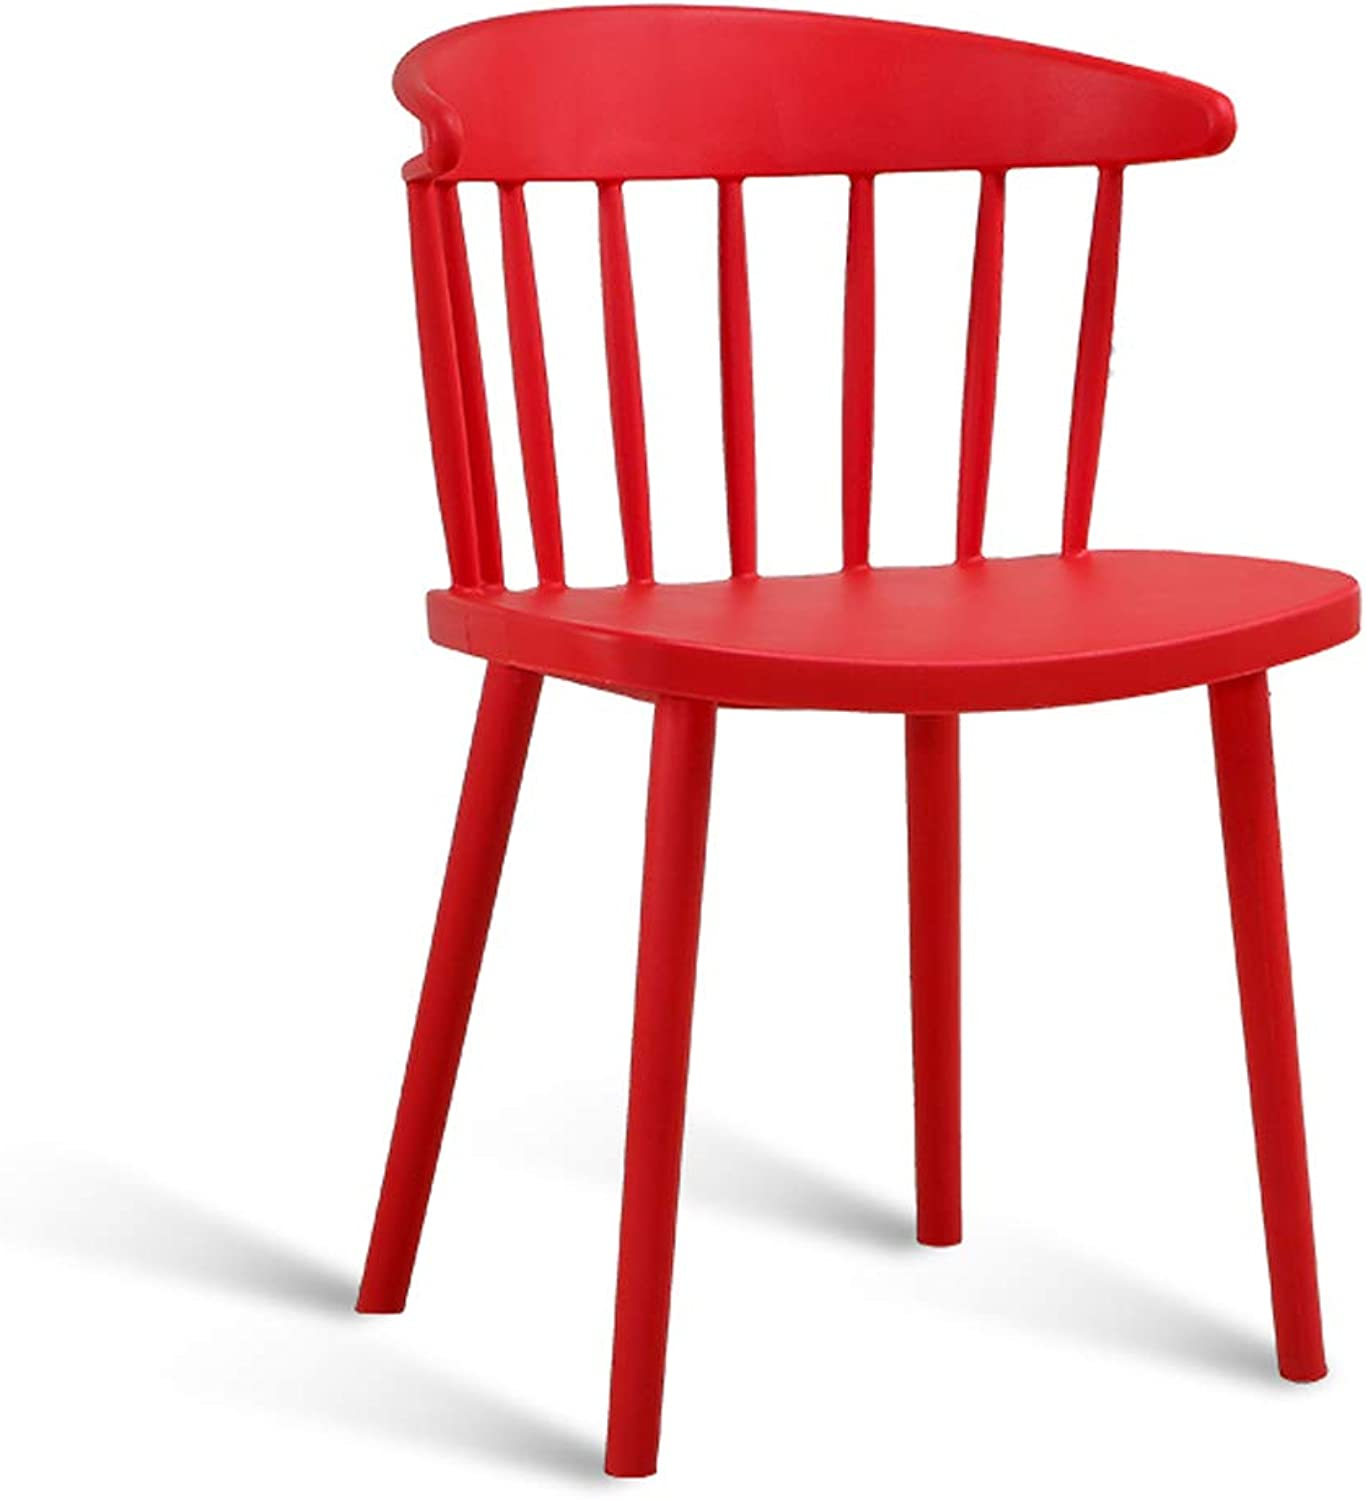 LRW Modern Minimalist Dining Chair, Home Desk Chair, Plastic Backrest Leisure Chair, American Cafe Chair, Red